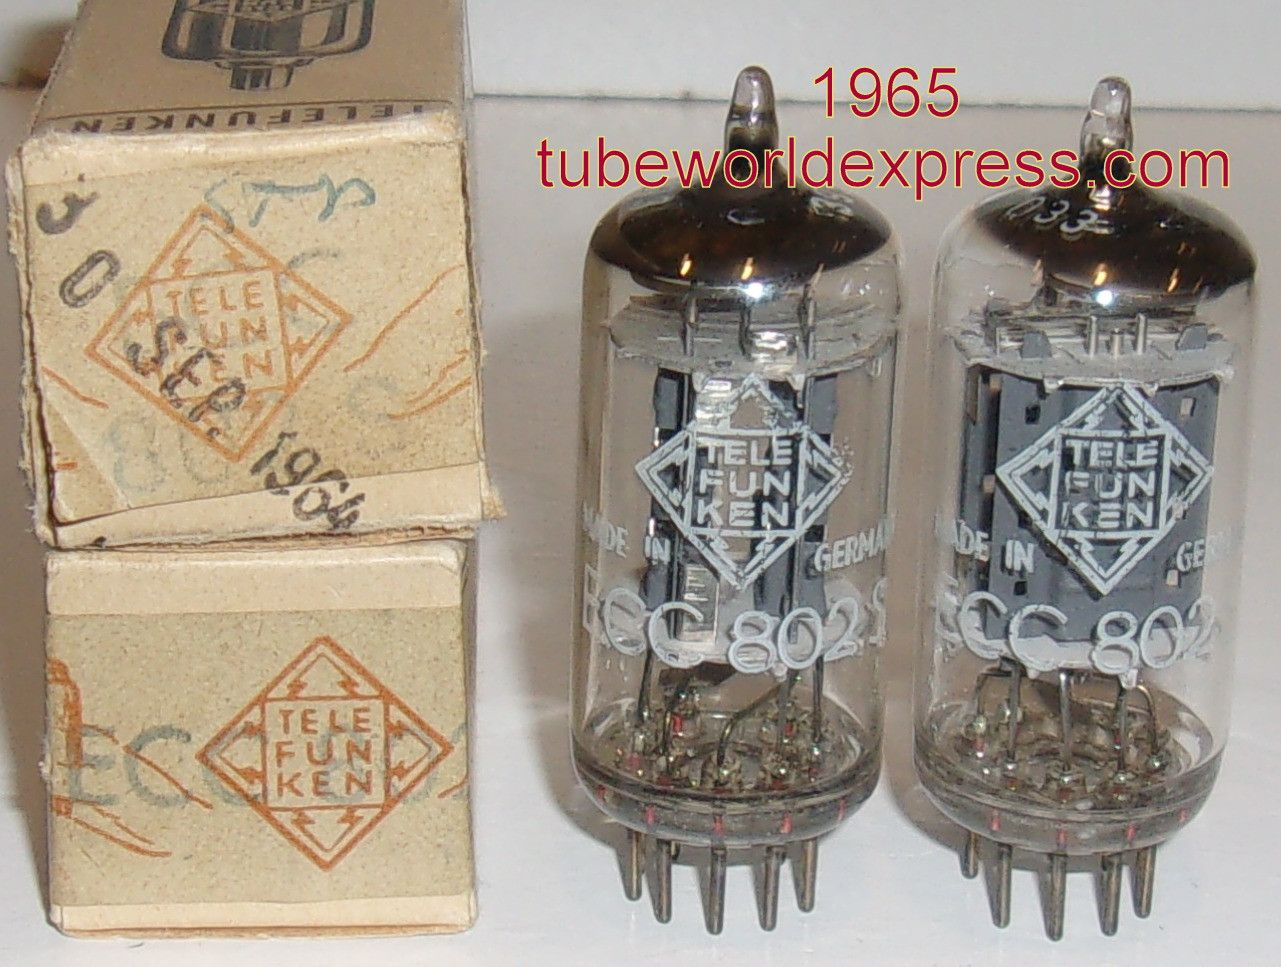 1 12au7 Pair Ecc802s 12au7 Telefunken Germany Lt Gt Bottom Pairs Stuff To Buy Vacuum Tube